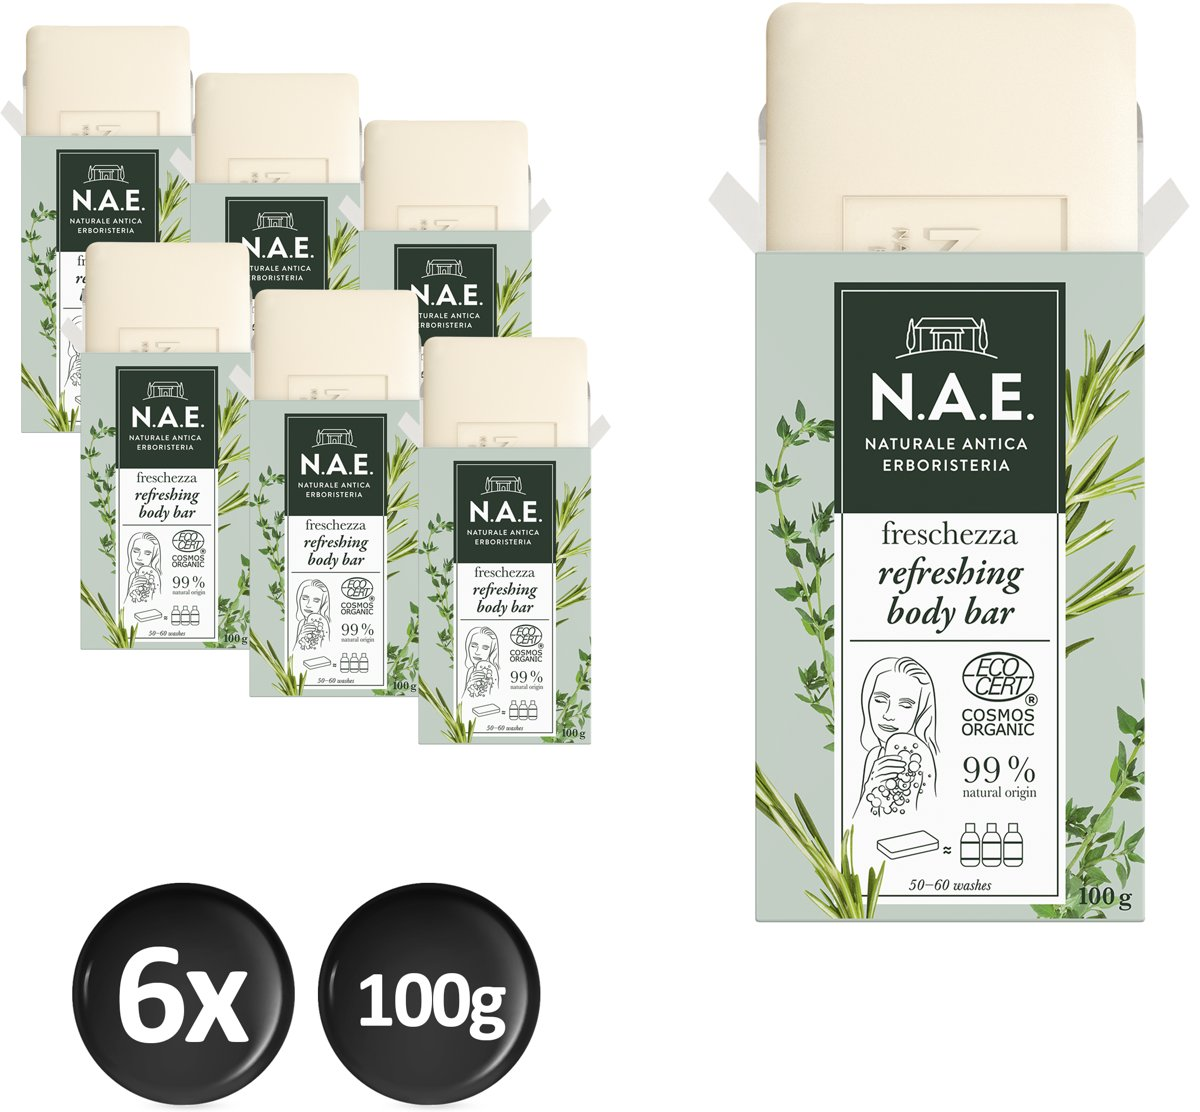 N.A.E. Freschezza Refreshing Body Bar 6x